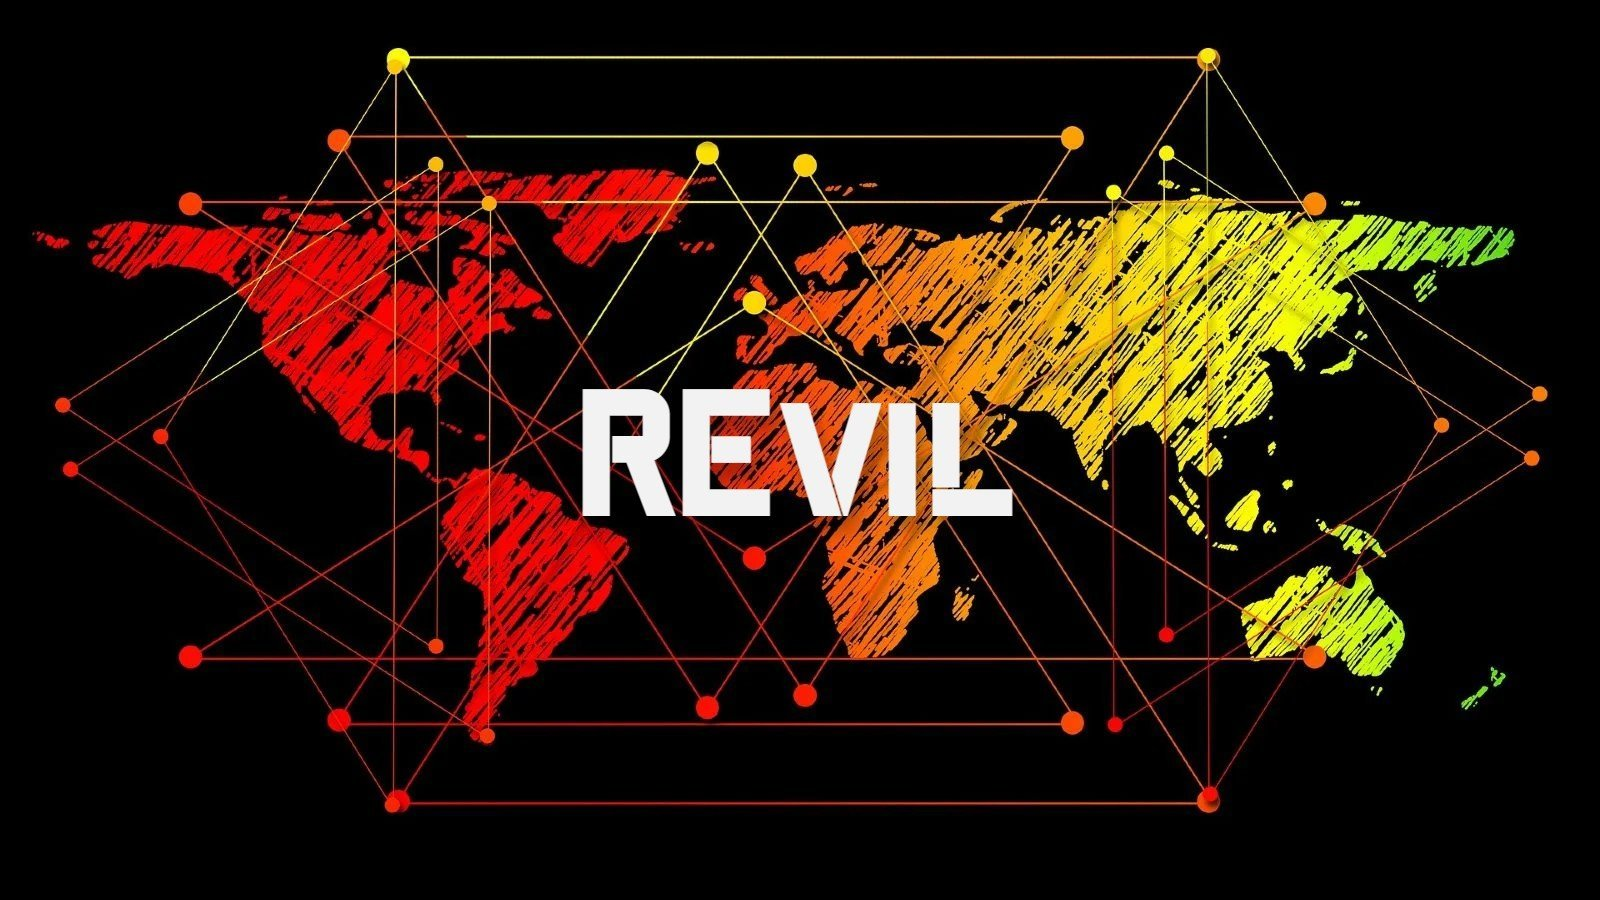 REvil ransomware gang's web sites mysteriously shut down